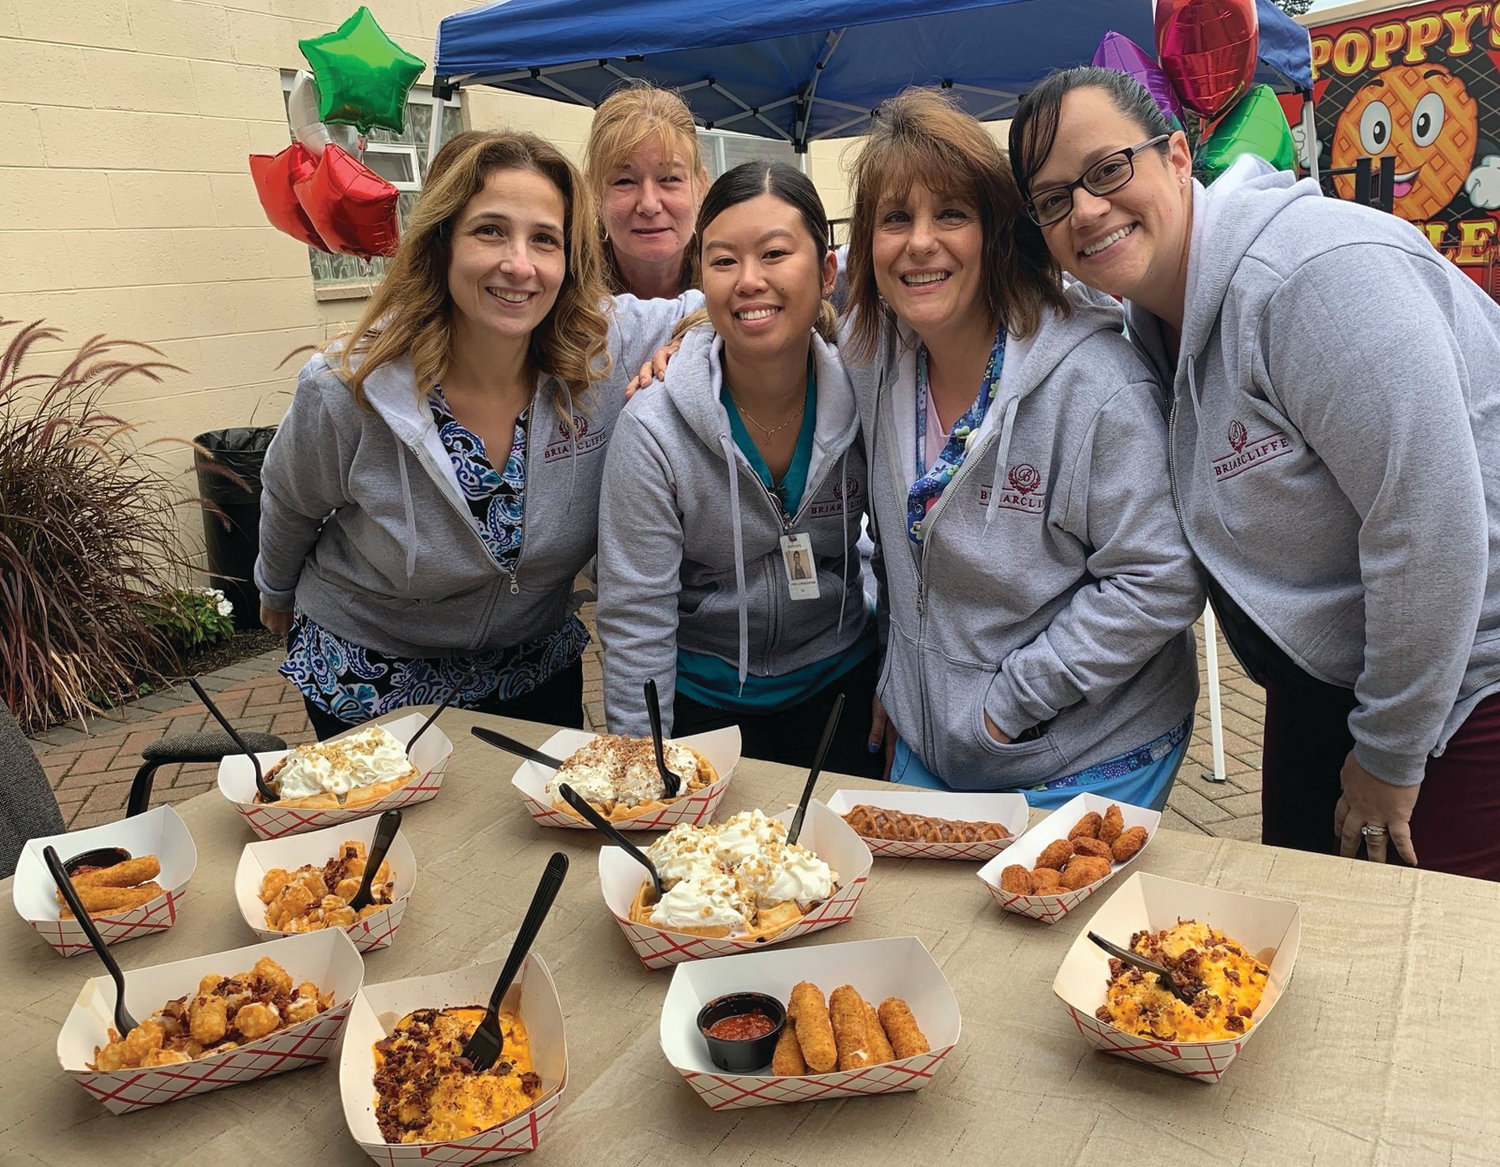 MOUTH-WATERING MUNCHIES: Briarcliffe nurses Jonna Matos, Lorna Parrillo, Linda Laungasoupom, Deborah Petronelli and Beth Brosnahan enjoy a lighter moment in front of the Poppy's Waffle truck while waiting to sample the many unique foods that were featured during the recent Nurses Appreciation Day Luncheon.